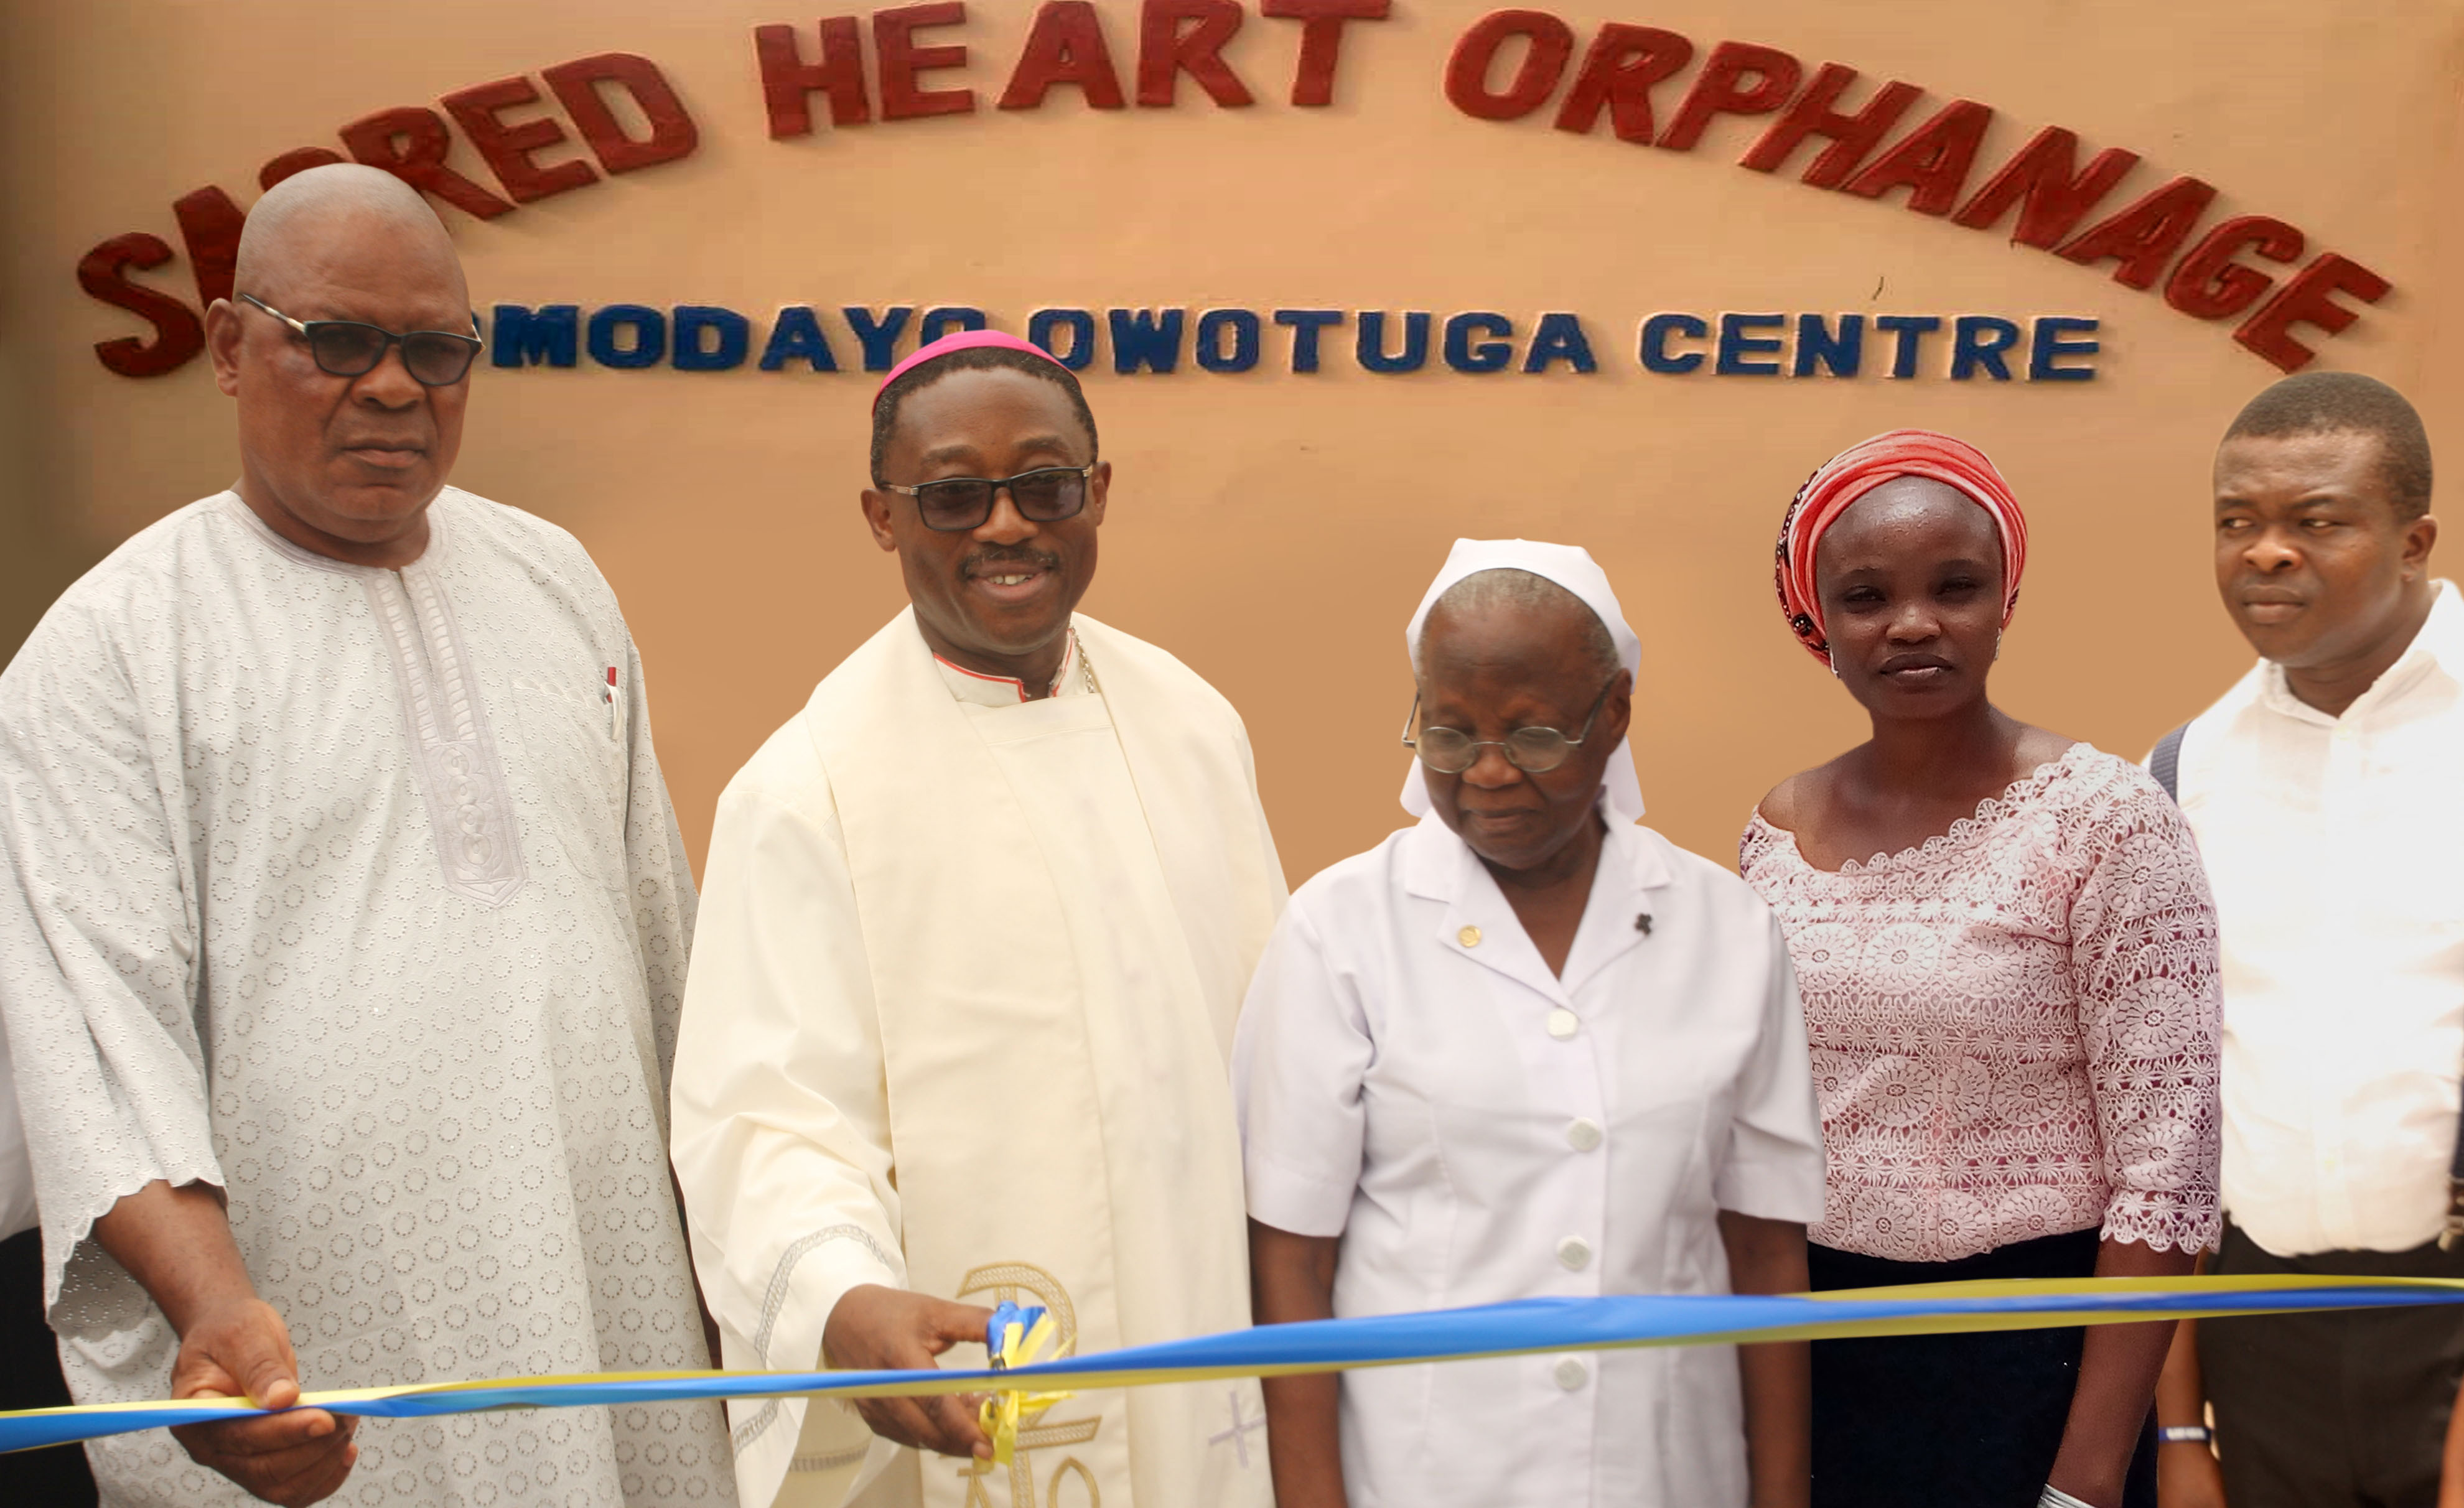 Nigeria's first hospital partners Late Most Supreme AP. Matthew Omodayo Owotuga Foundation to serve motherless babies